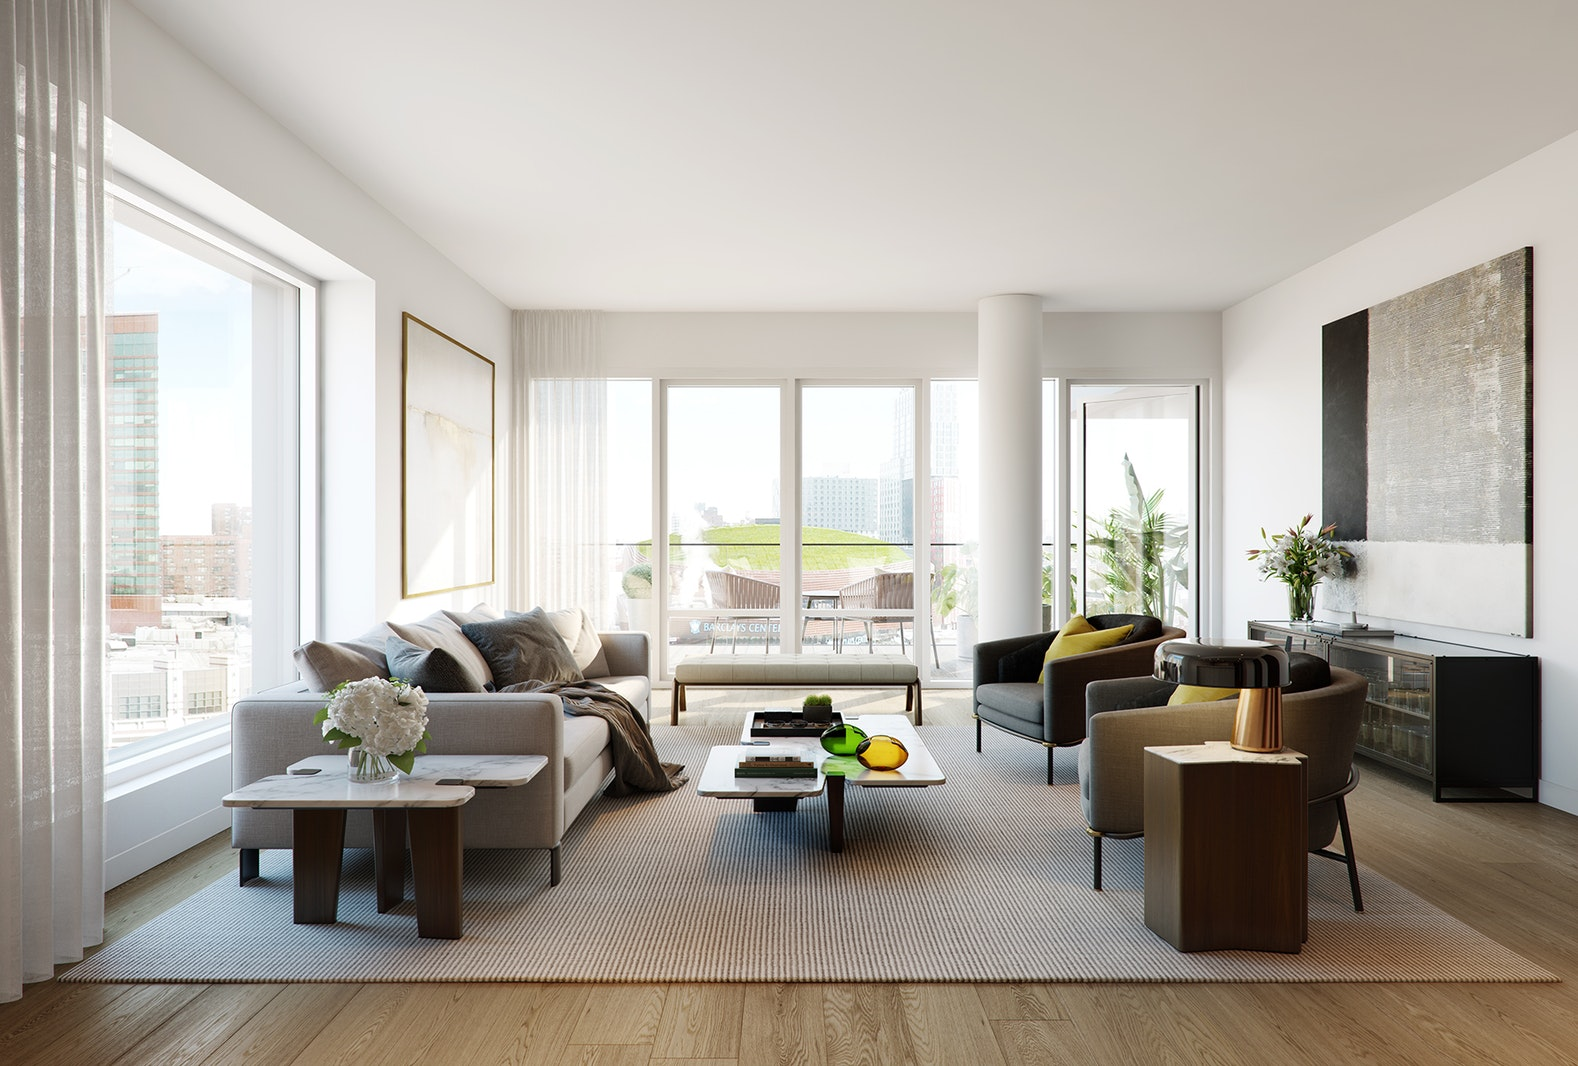 561 Pacific Street 506, Boerum Hill, Brooklyn, NY, 11217, $2,575,000, Property For Sale, Halstead Real Estate, Photo 4